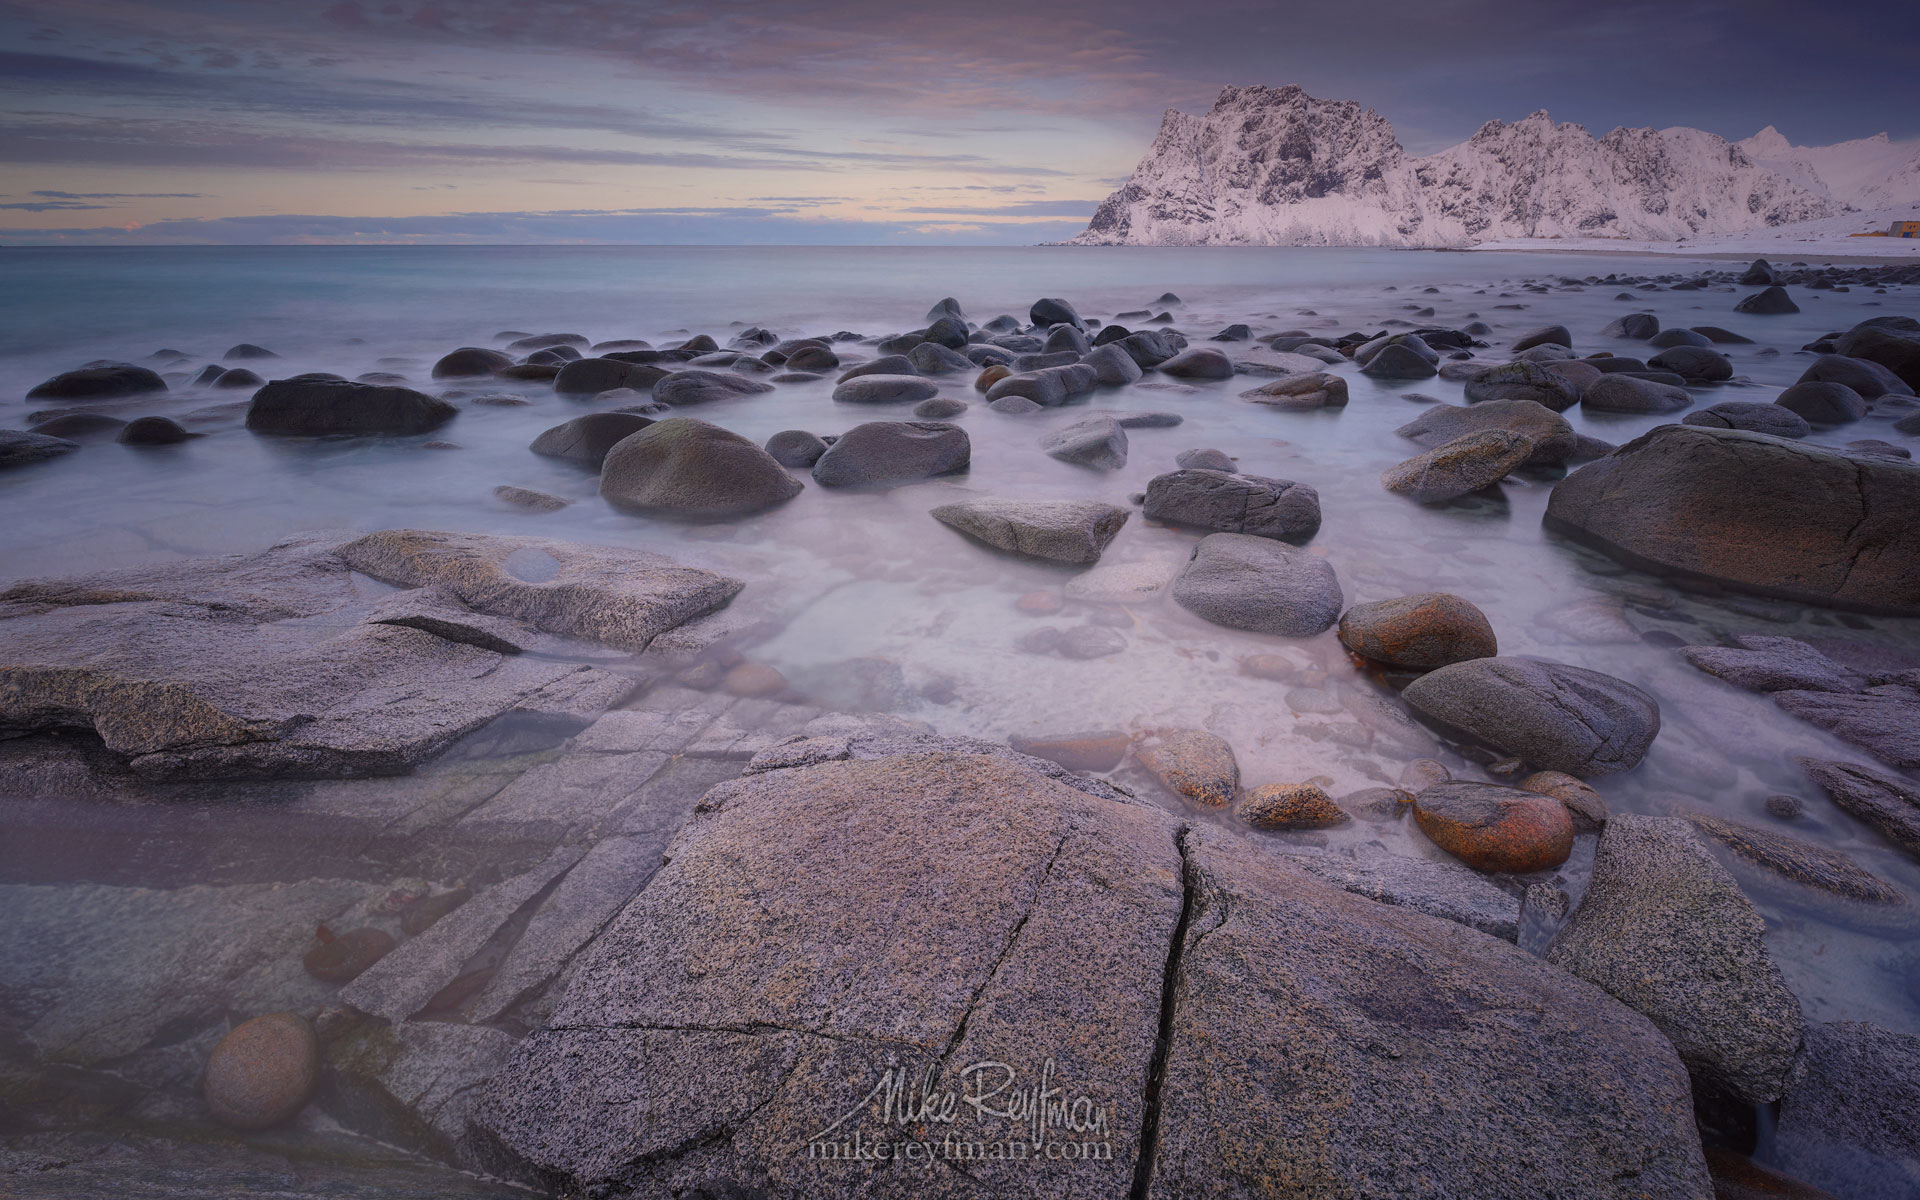 Boulders on Utakleiv beach after sunset. Vestvagoy, Lofoten Islands, Norway LF-MRD1E2352 - Lofoten Archipelago in Winter, Arctic Norway - Mike Reyfman Photography